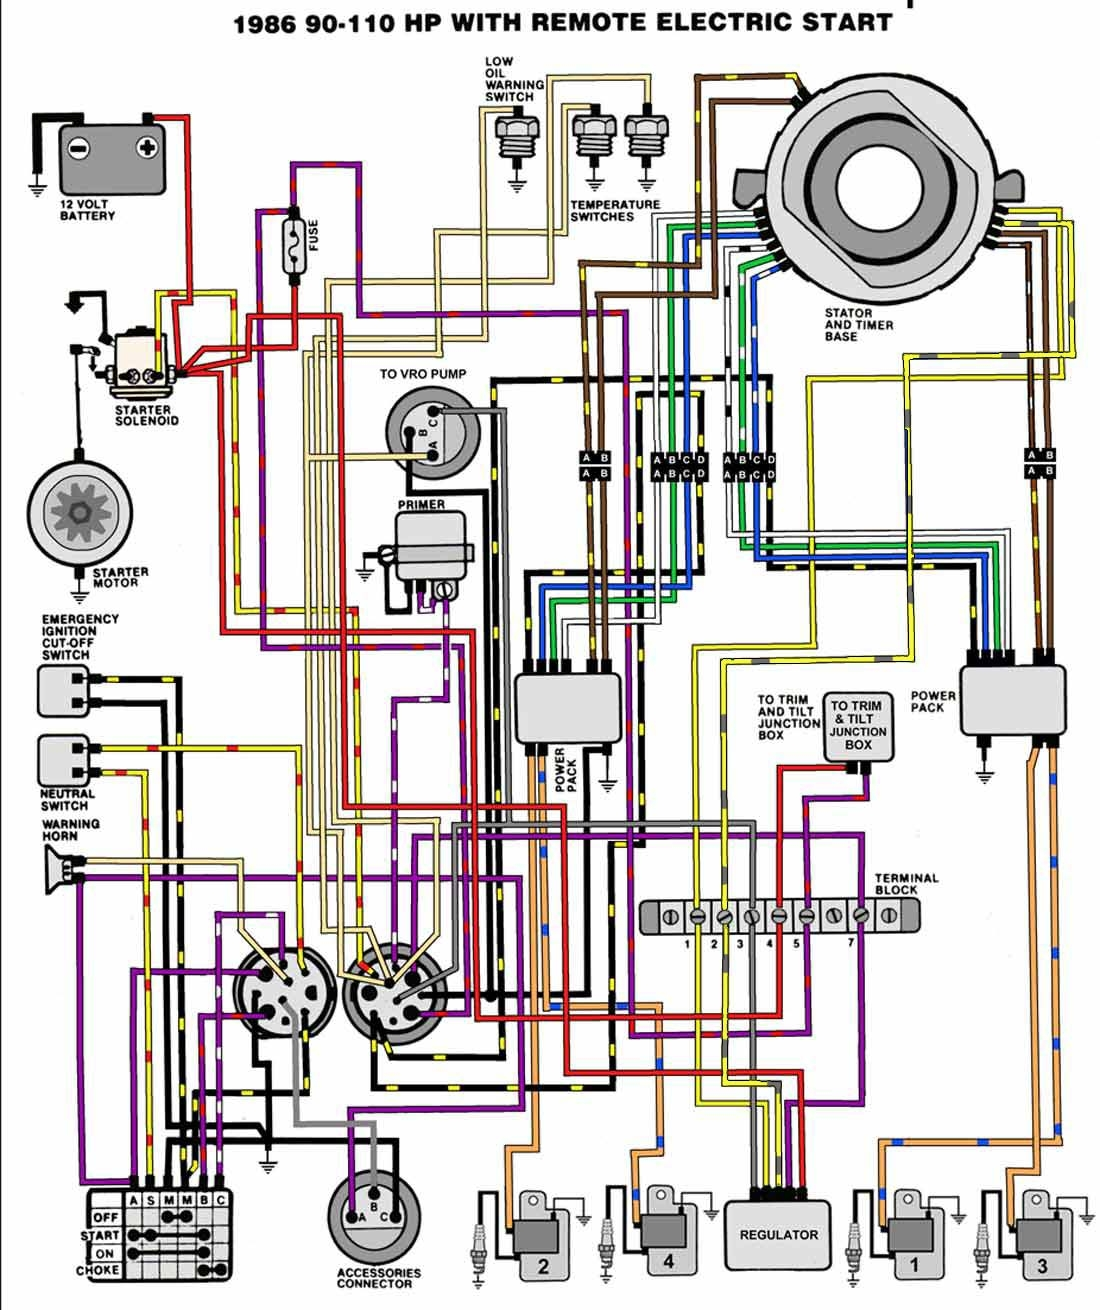 mercury outboard wiring diagram | free wiring diagram mercury outboard wiring harness color